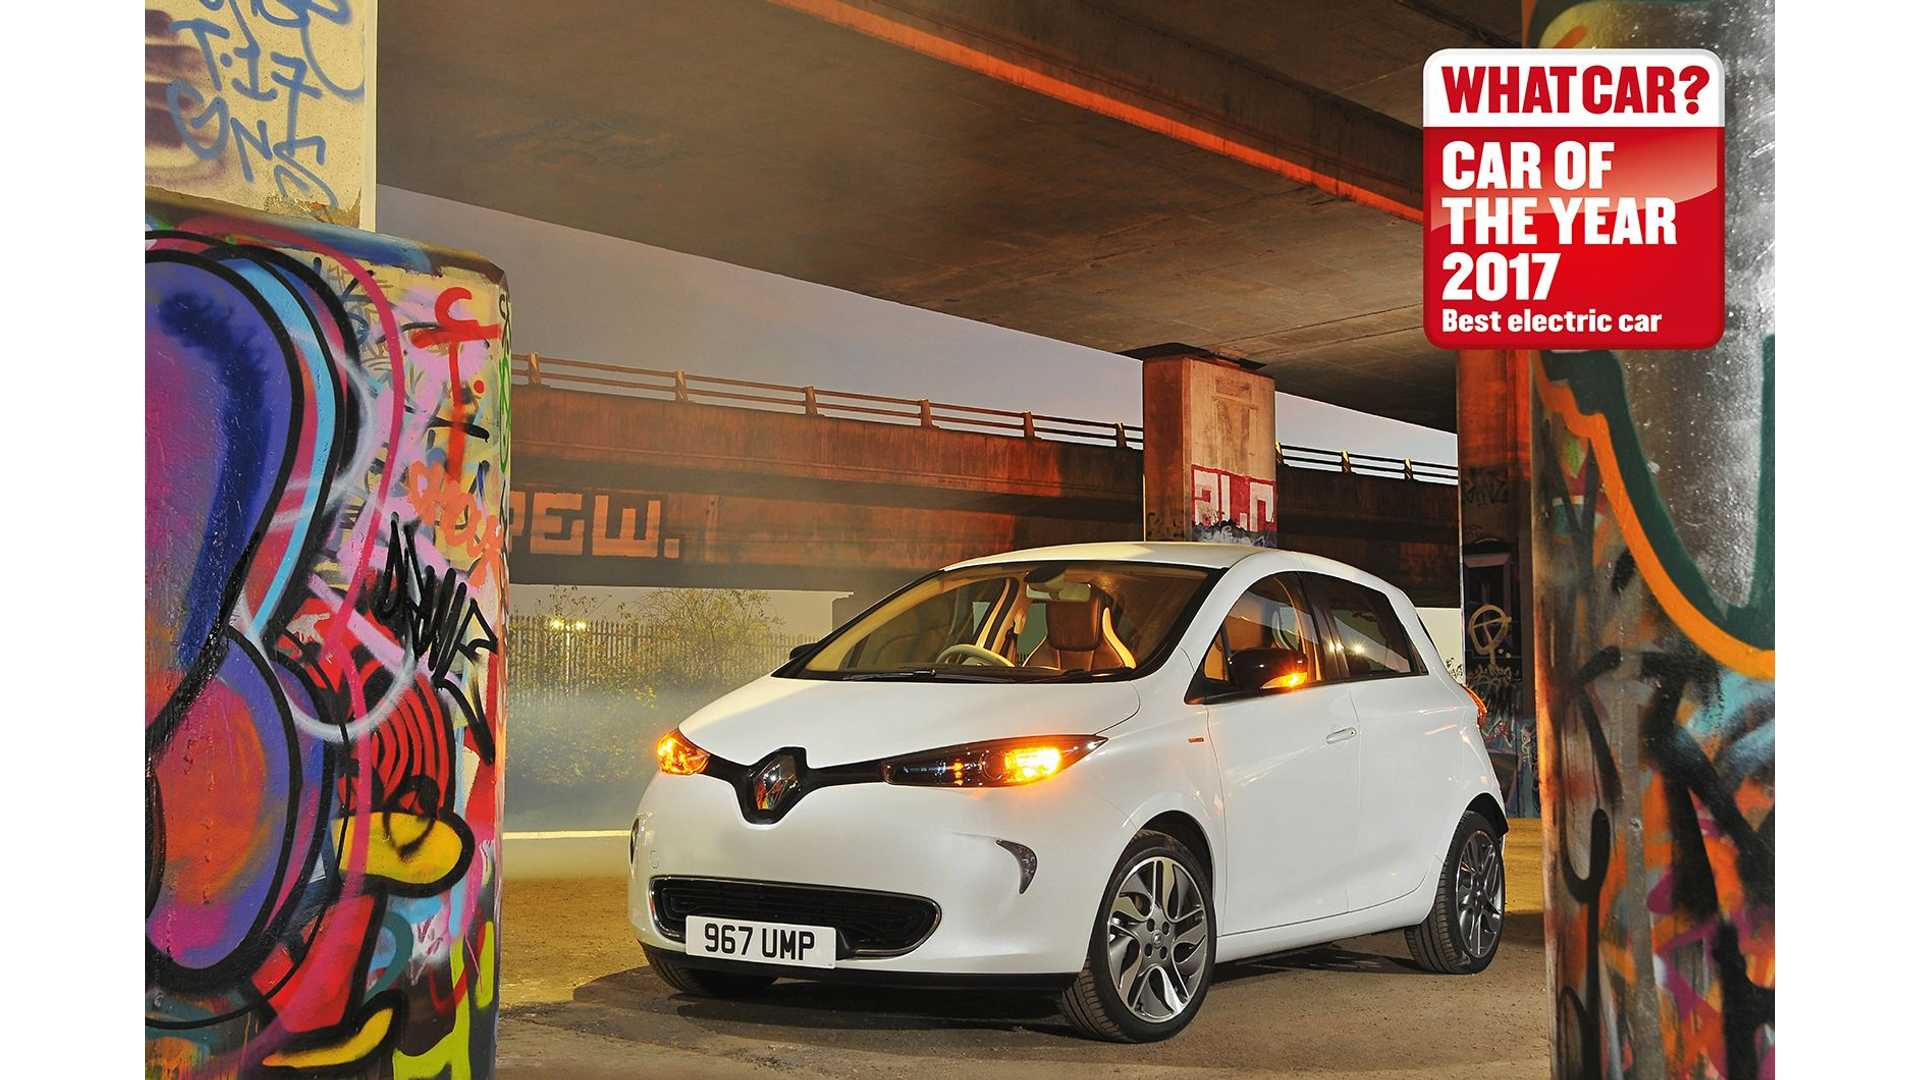 Renault Zoe Wins 2017 What Car Best Ev Award For Fourth Consecutive Year